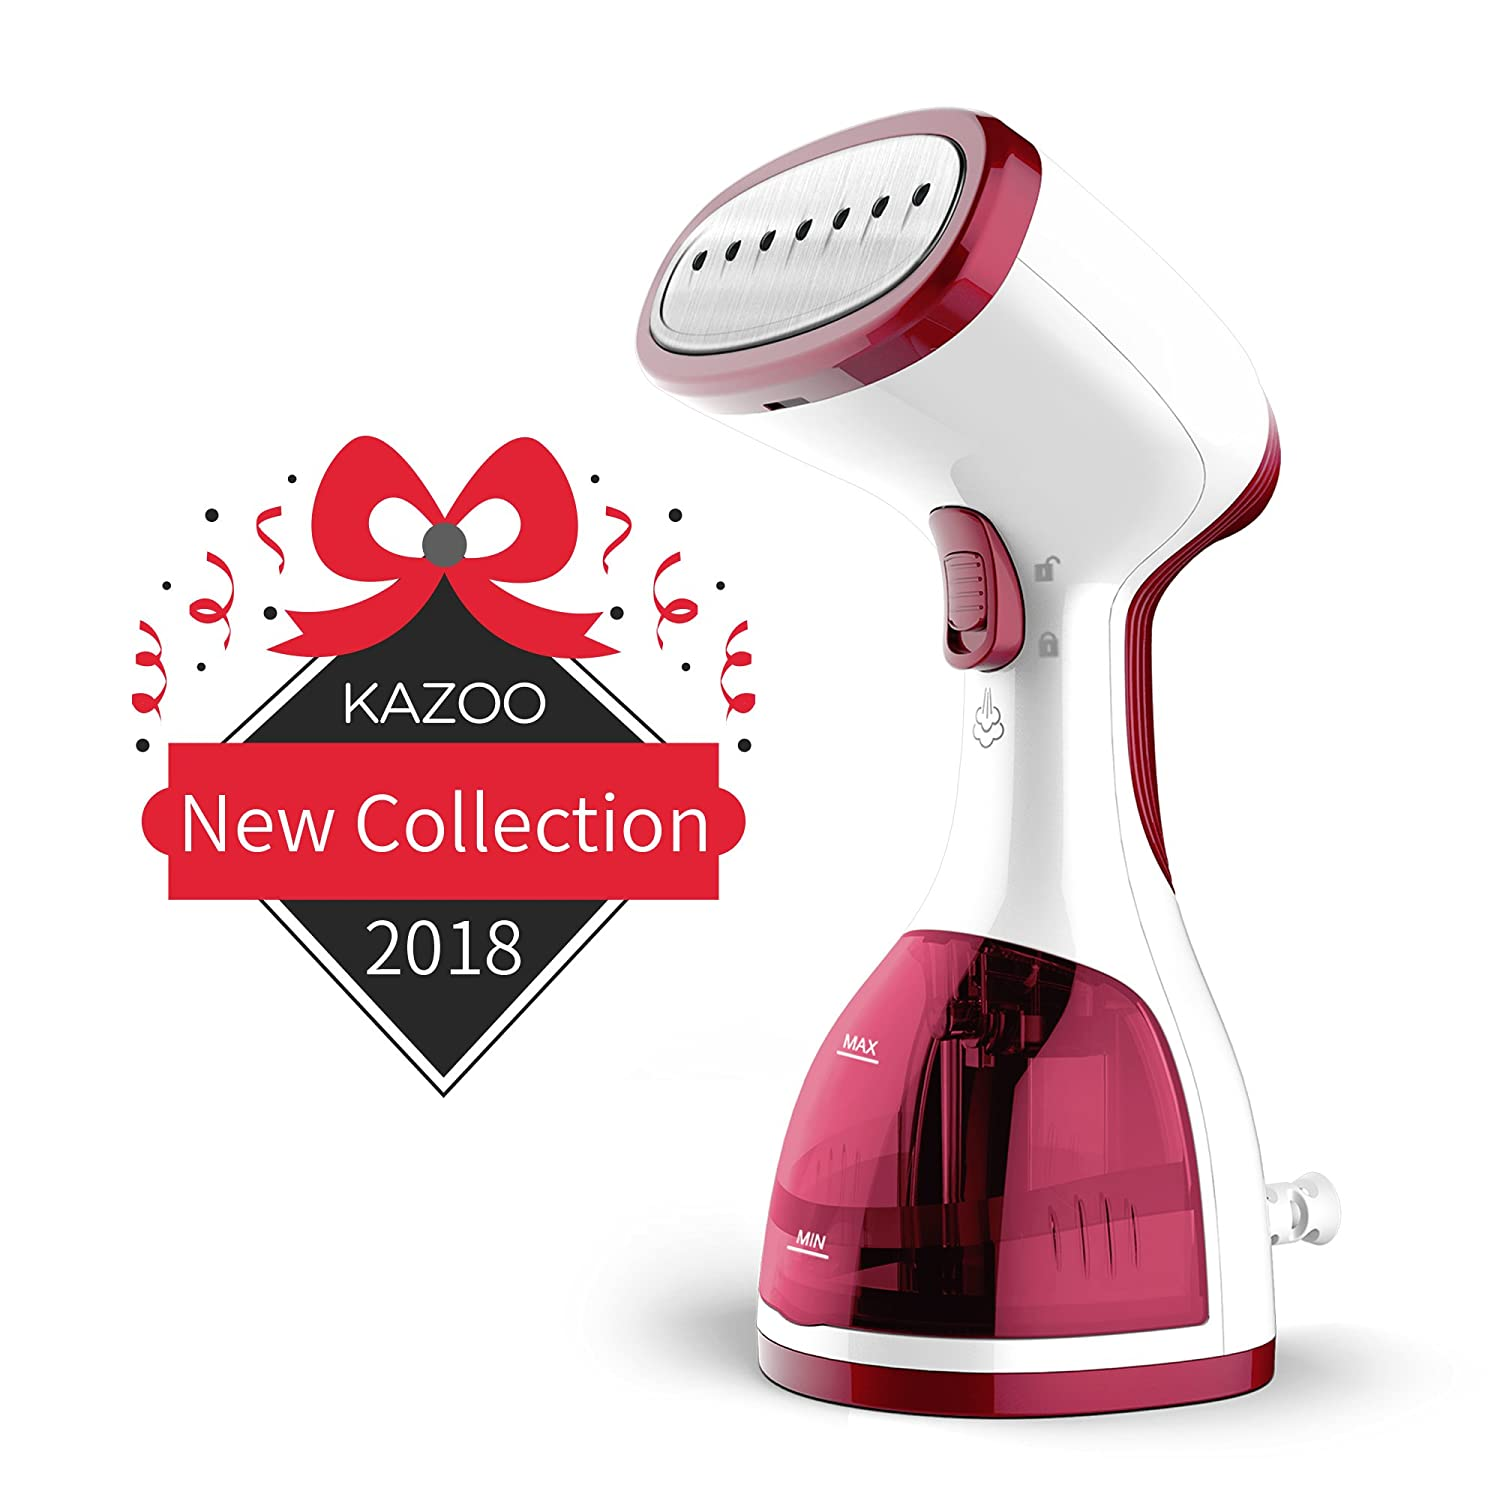 Kazoo Handheld Clothes Steamer - Travel Garment Steamer for Clothes - Portable Fabric Steamer Fast Heat up Powerful with 260ml Large Capacity - Instant Steam Iron Perfect for Traveling, Home and Gift QH03-RED